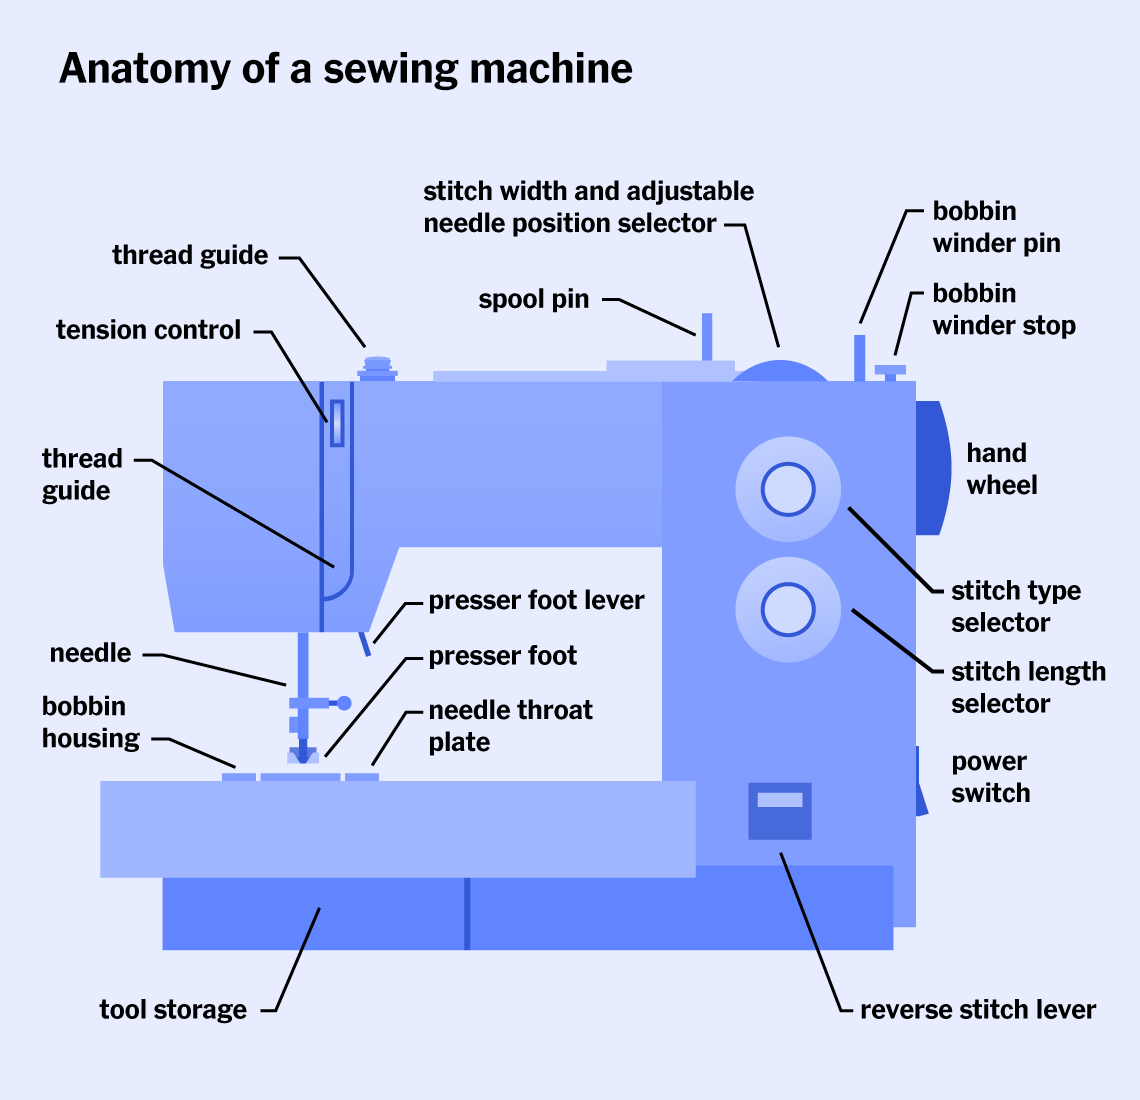 hight resolution of an illustration showing the anatomy of a sewing machine